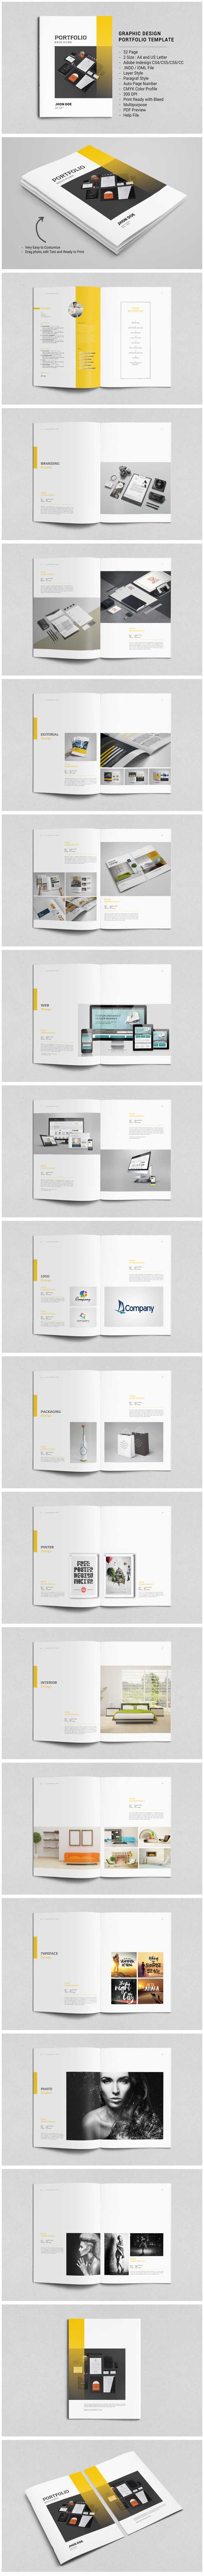 Check out my behance project graphic design portfolio template check out my behance project graphic design portfolio template https pronofoot35fo Choice Image